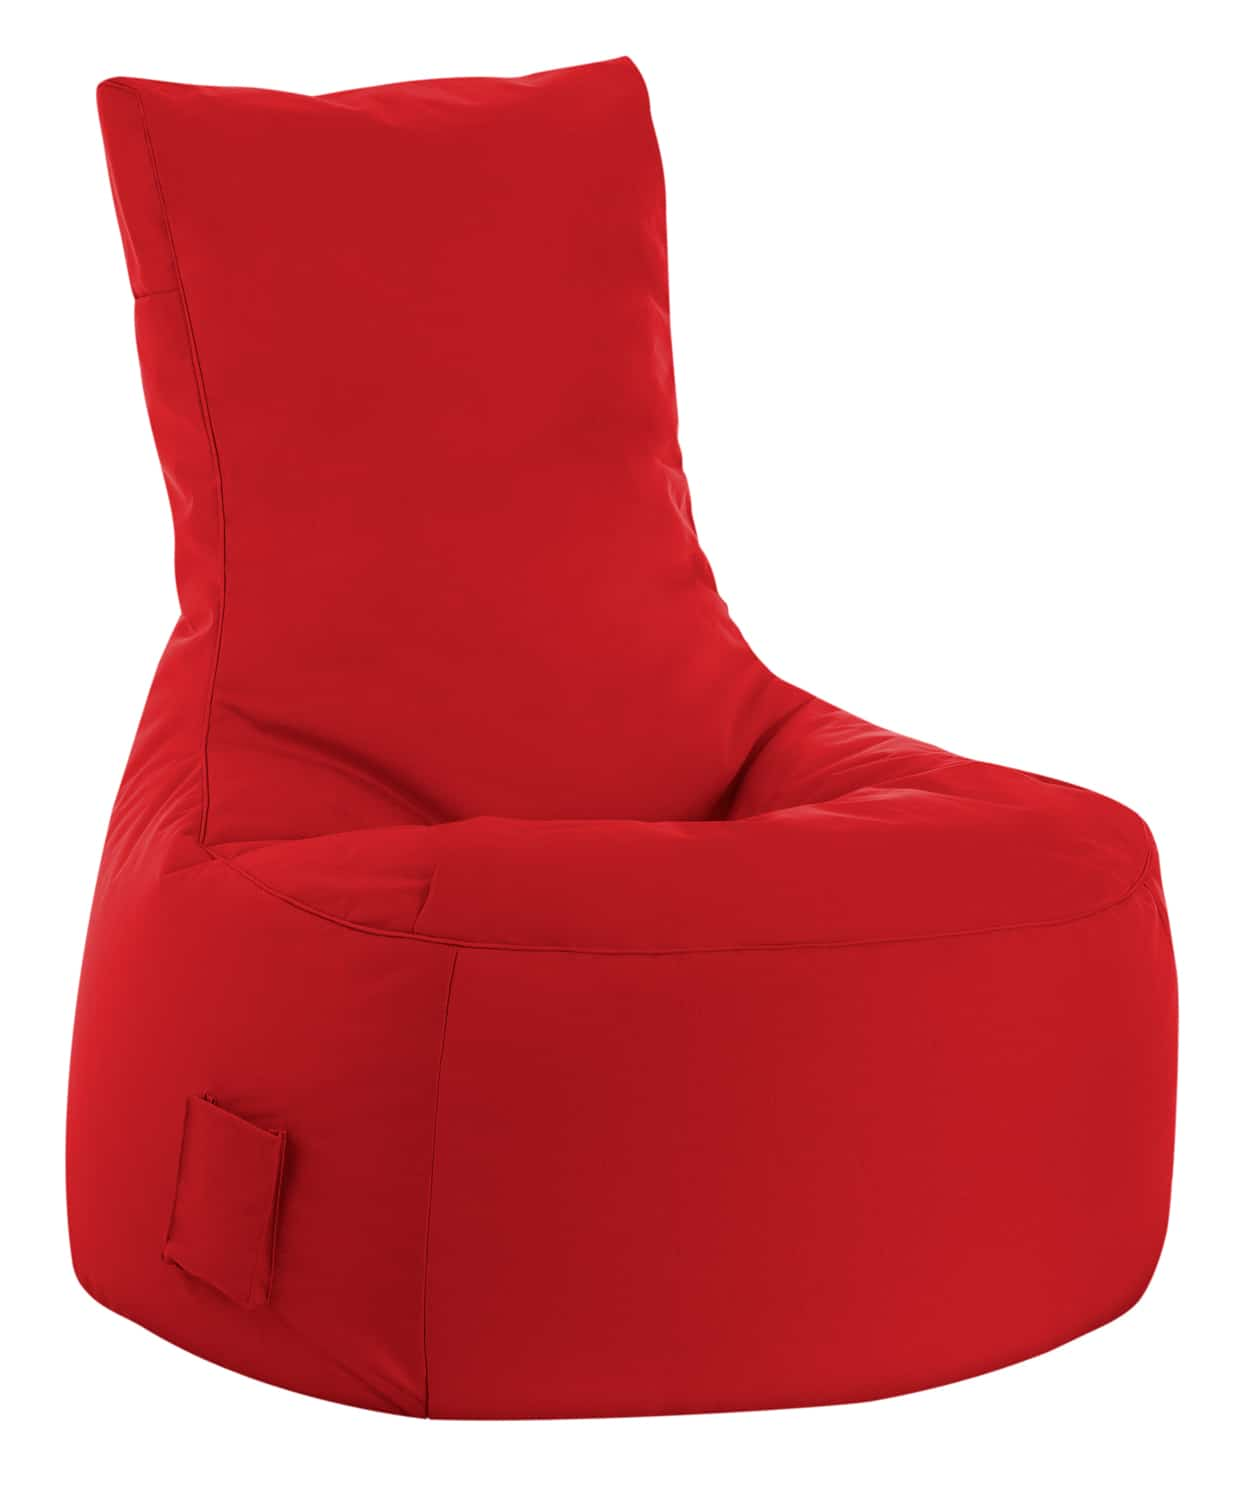 Swinging Egg Chair Ikea besides Outdoor Hotel Cinemas moreover Zitzak Stoel Buiten Rood likewise Experience furthermore 429671620677075161. on bean bag lounge